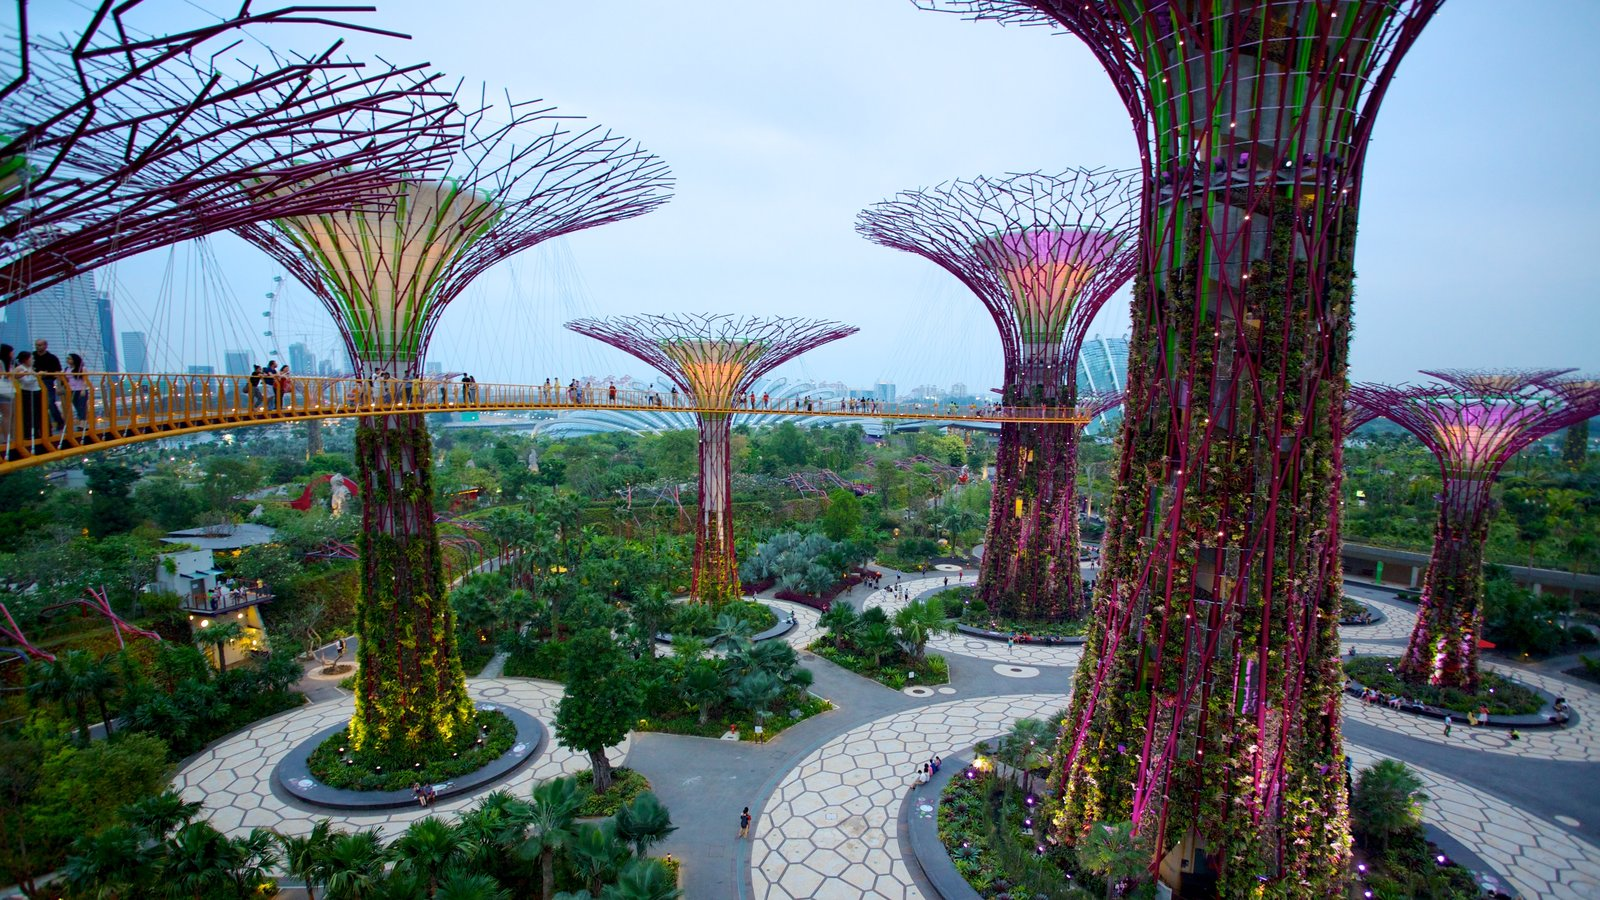 39527-Singapore-Gardens-By-The-Bay.jpg